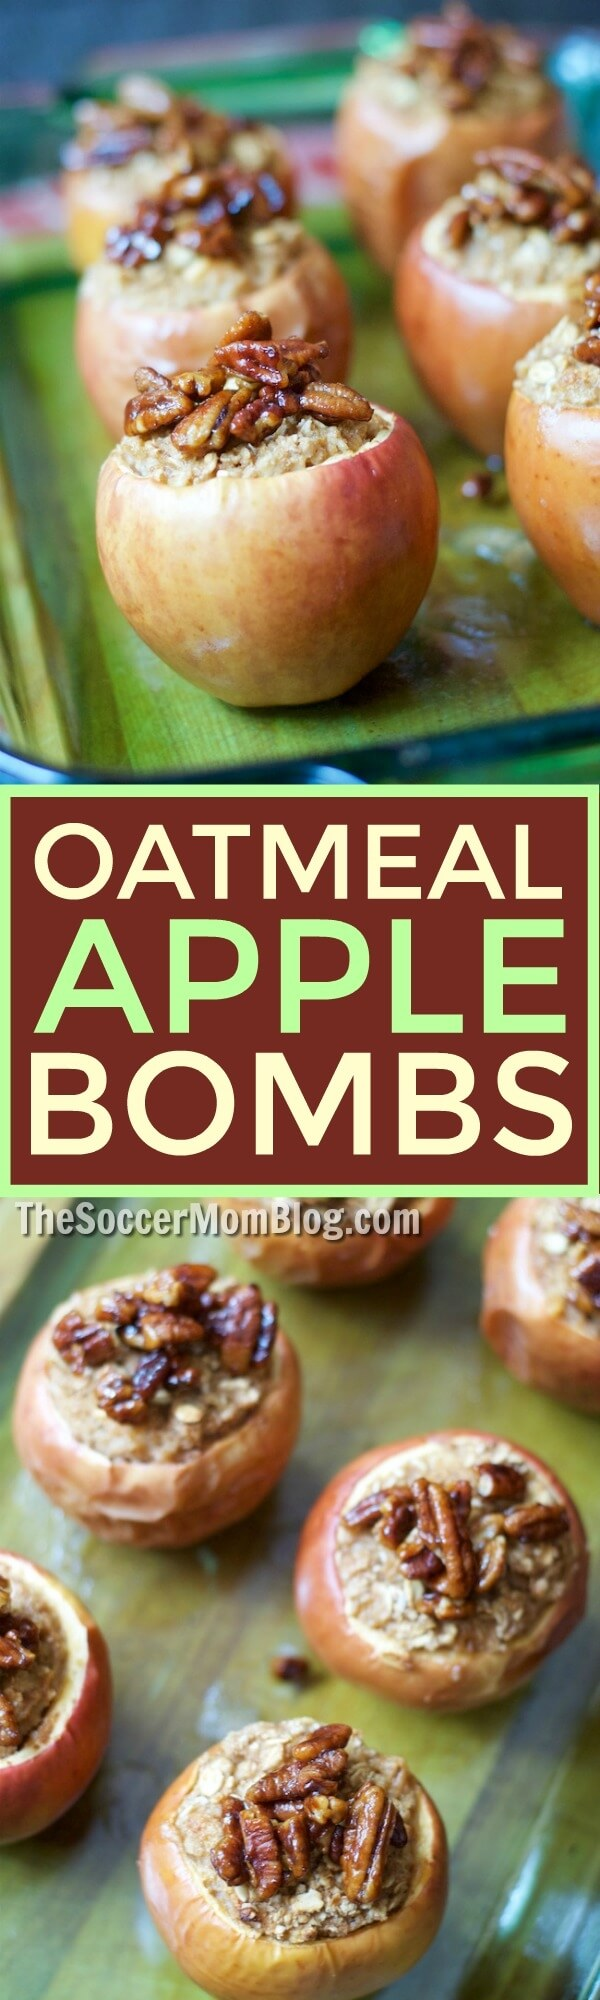 One taste of these cinnamon oatmeal stuffed apples and you'll never look at oatmeal the same again! Enjoy as a healthy dessert or unique breakfast!